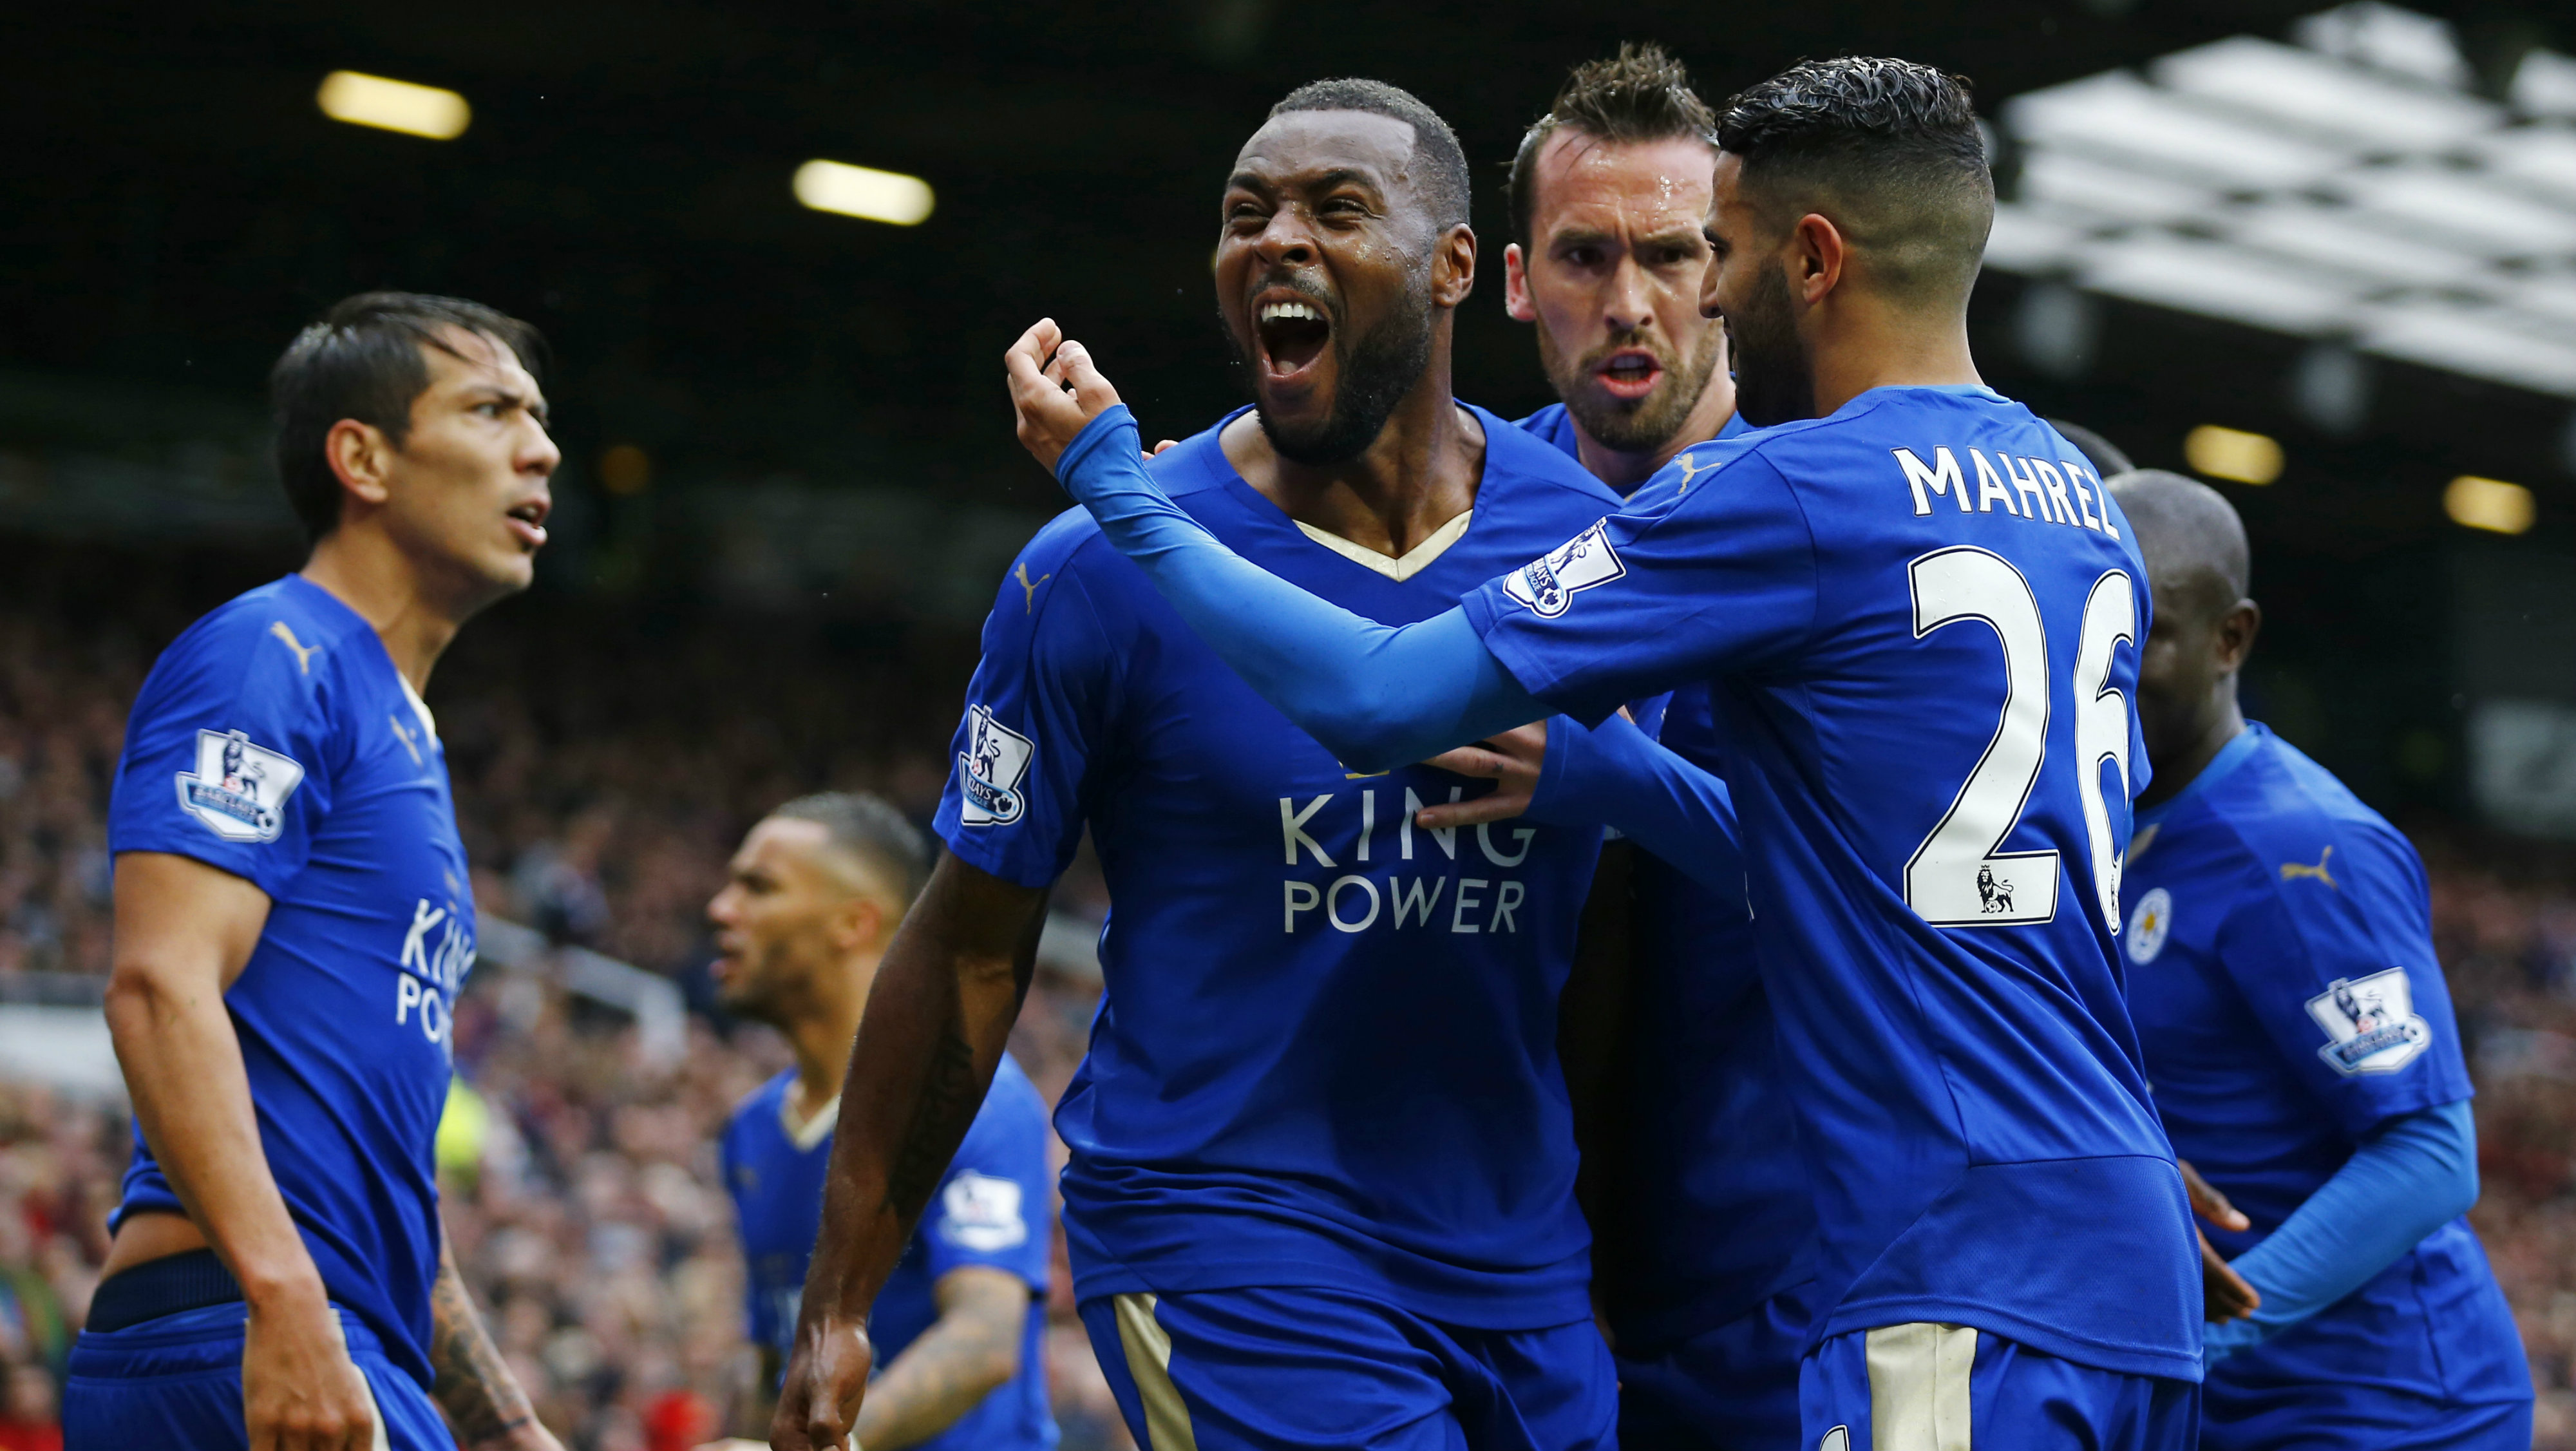 DATE IMPORTED:May 03, 2016Britain Football Soccer - Manchester United v Leicester City - Barclays Premier League - Old Trafford - 15/16 - 1/5/16